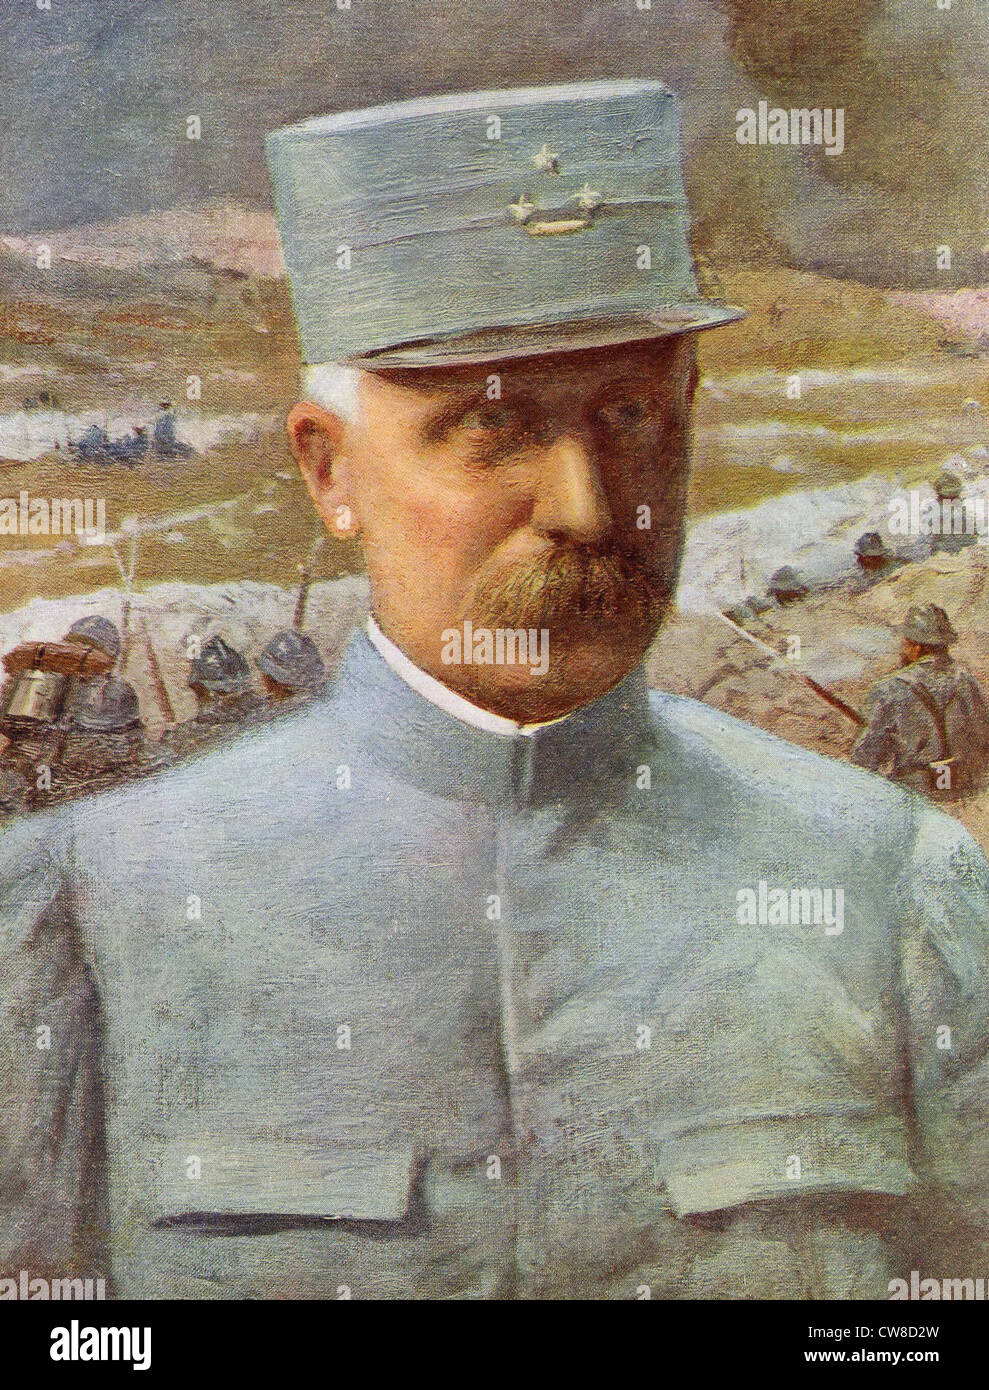 General Pétain - Stock Image